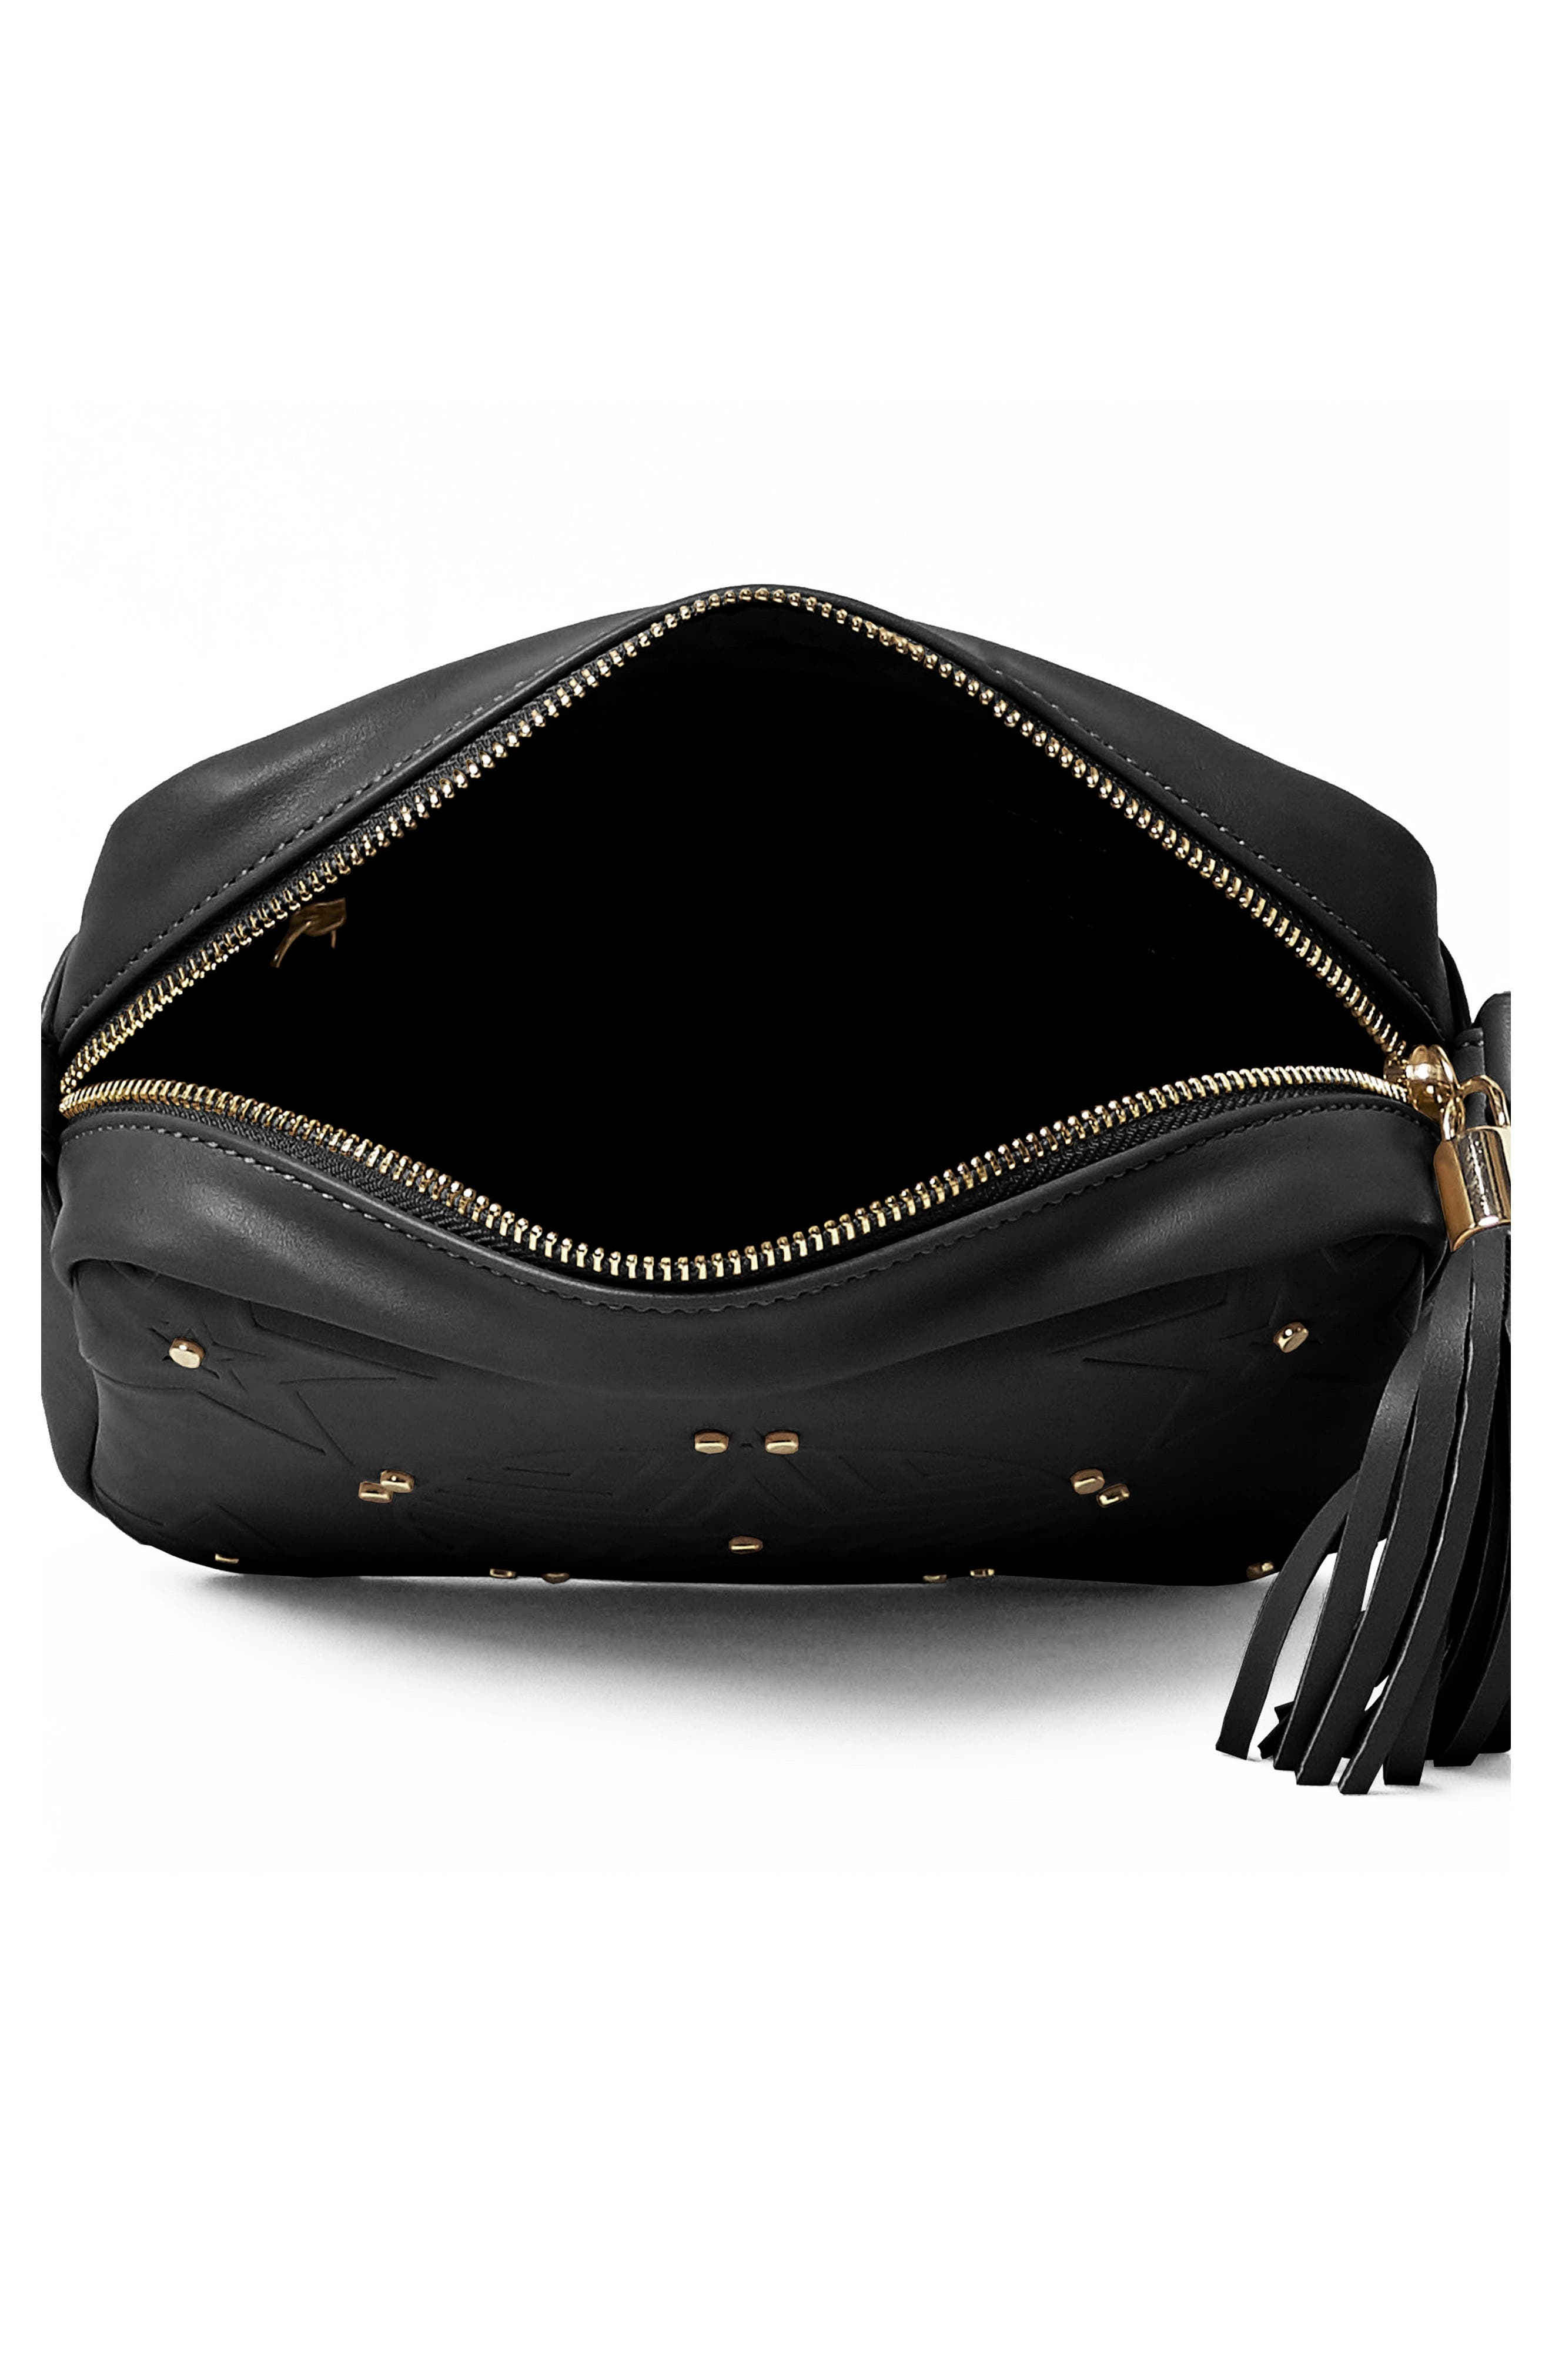 Stargazer Vegan Leather Crossbody Bag,                             Alternate thumbnail 2, color,                             Black